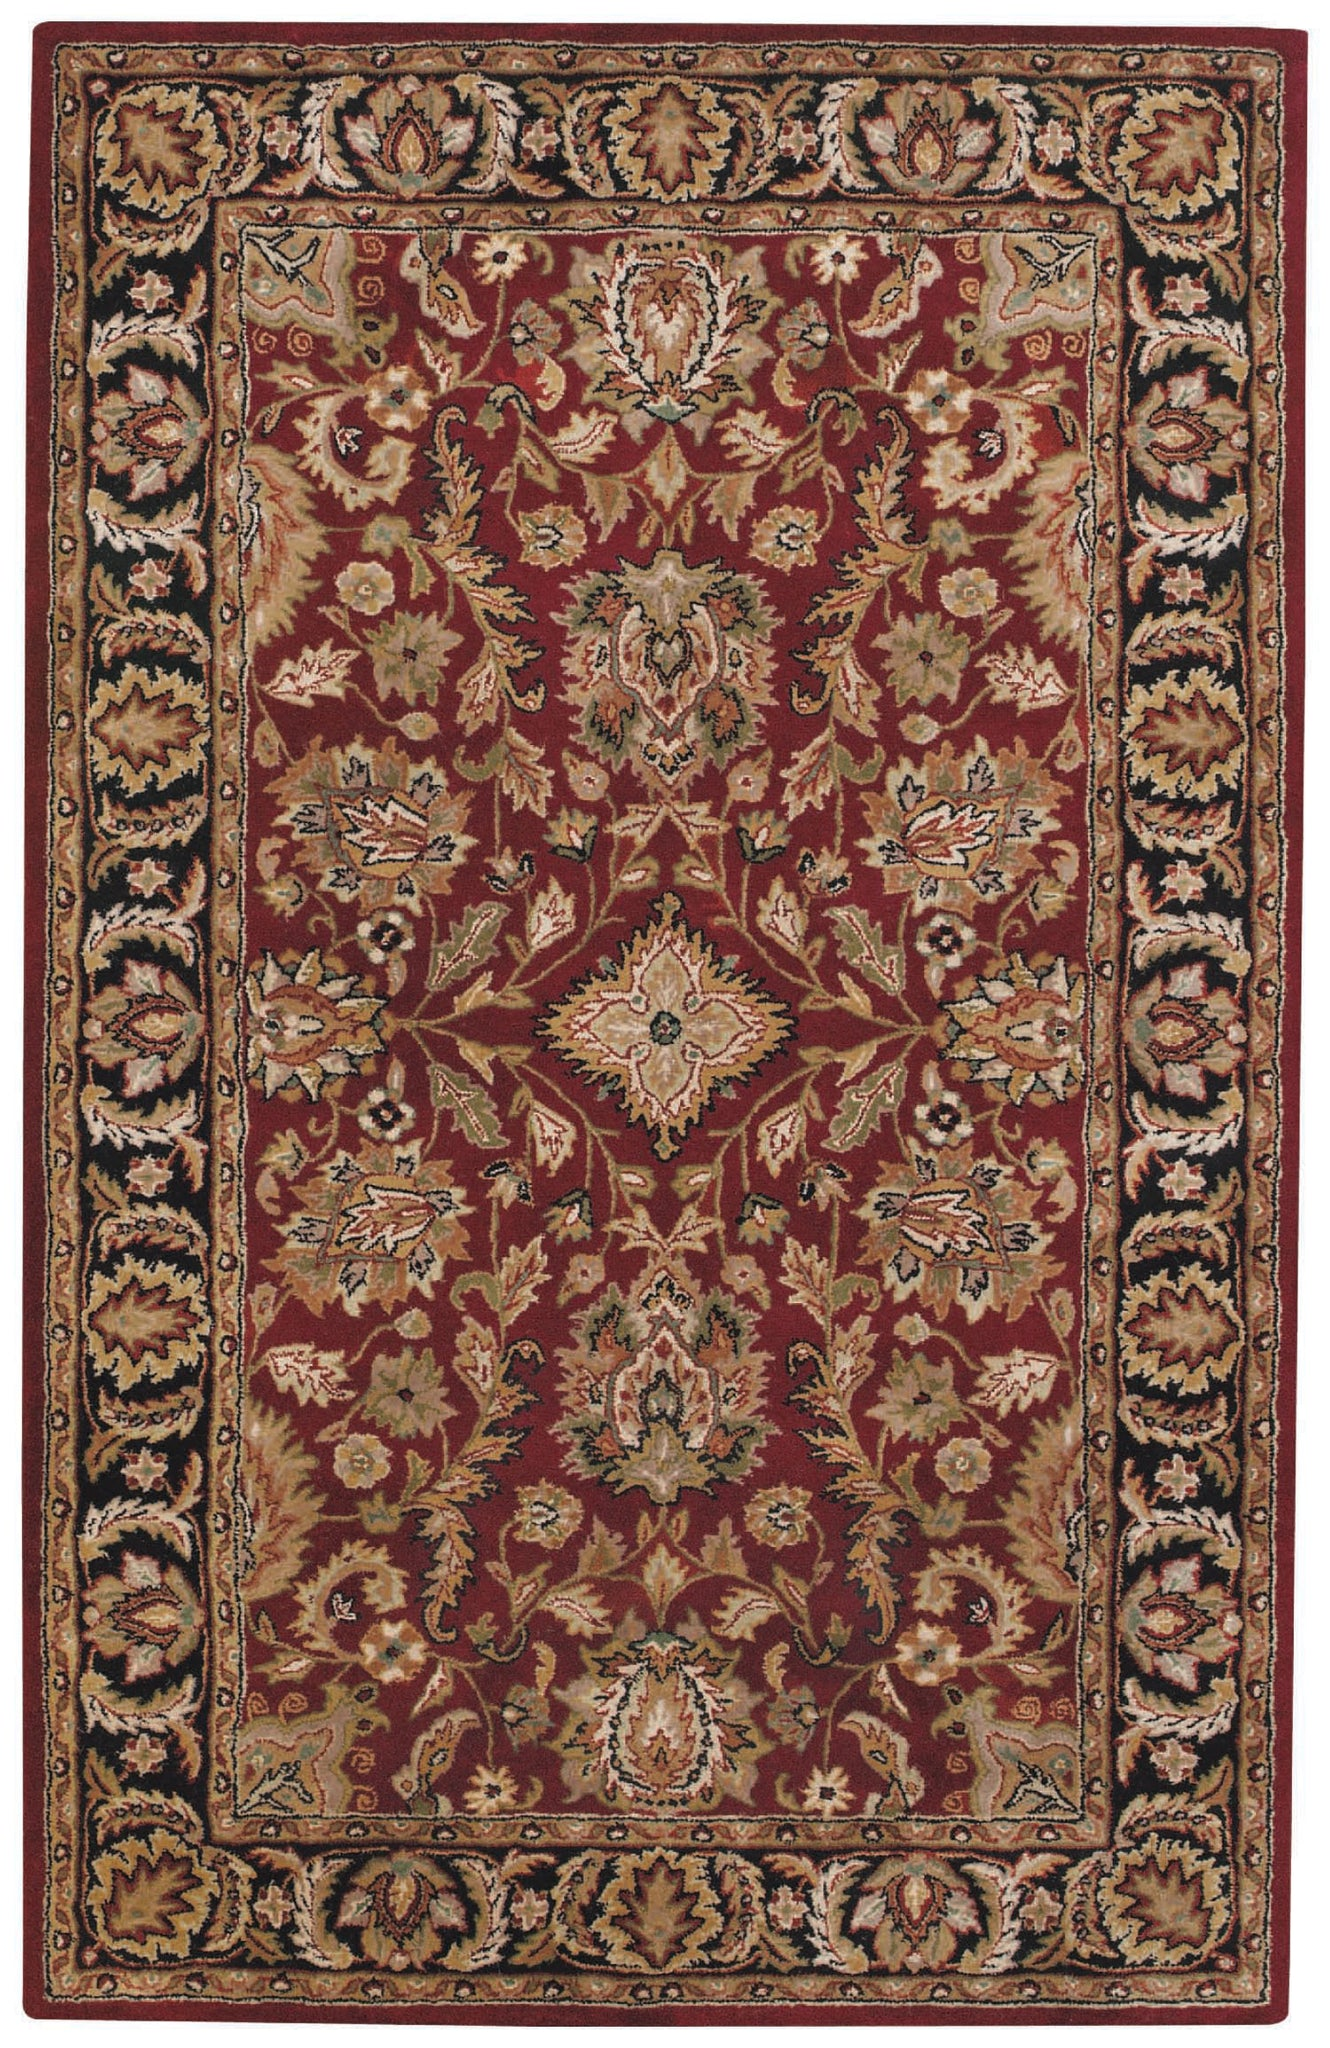 Capel Piedmont Fereghan 3347 Red Garnet 530 Area Rug main image